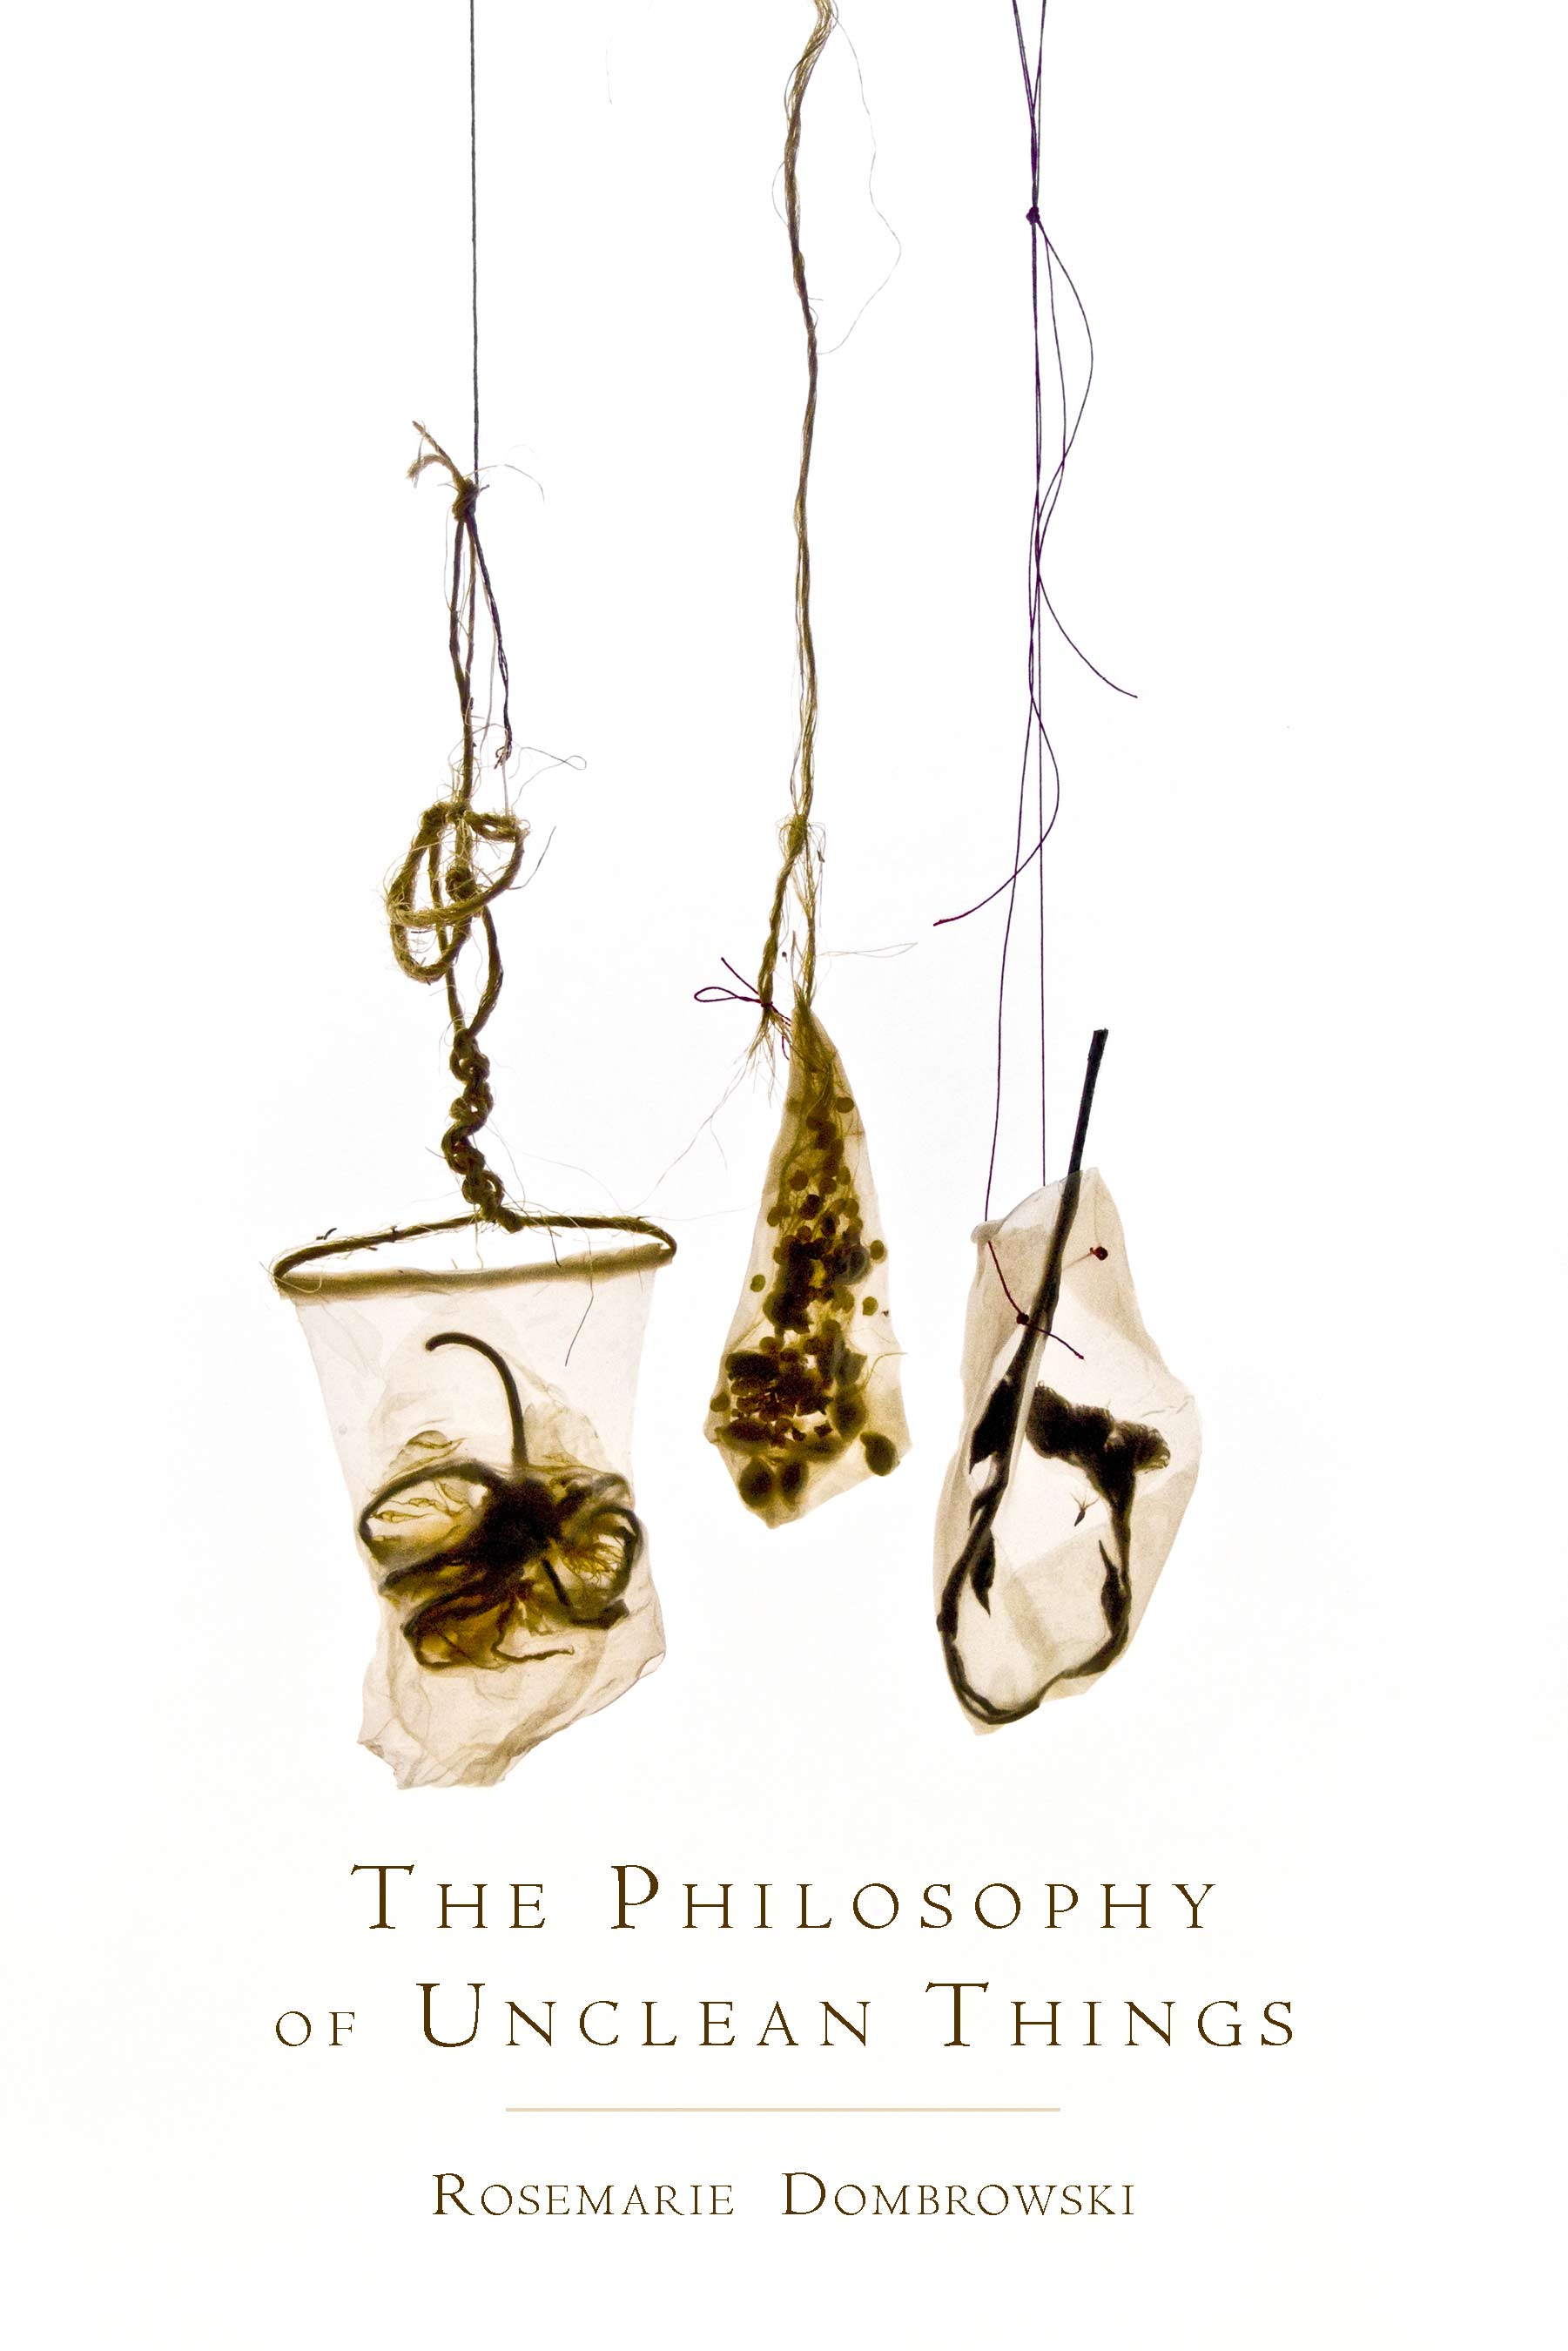 Cover art of The Philosophy of Unclean ThingsL Bags holding unrecognizable stuff